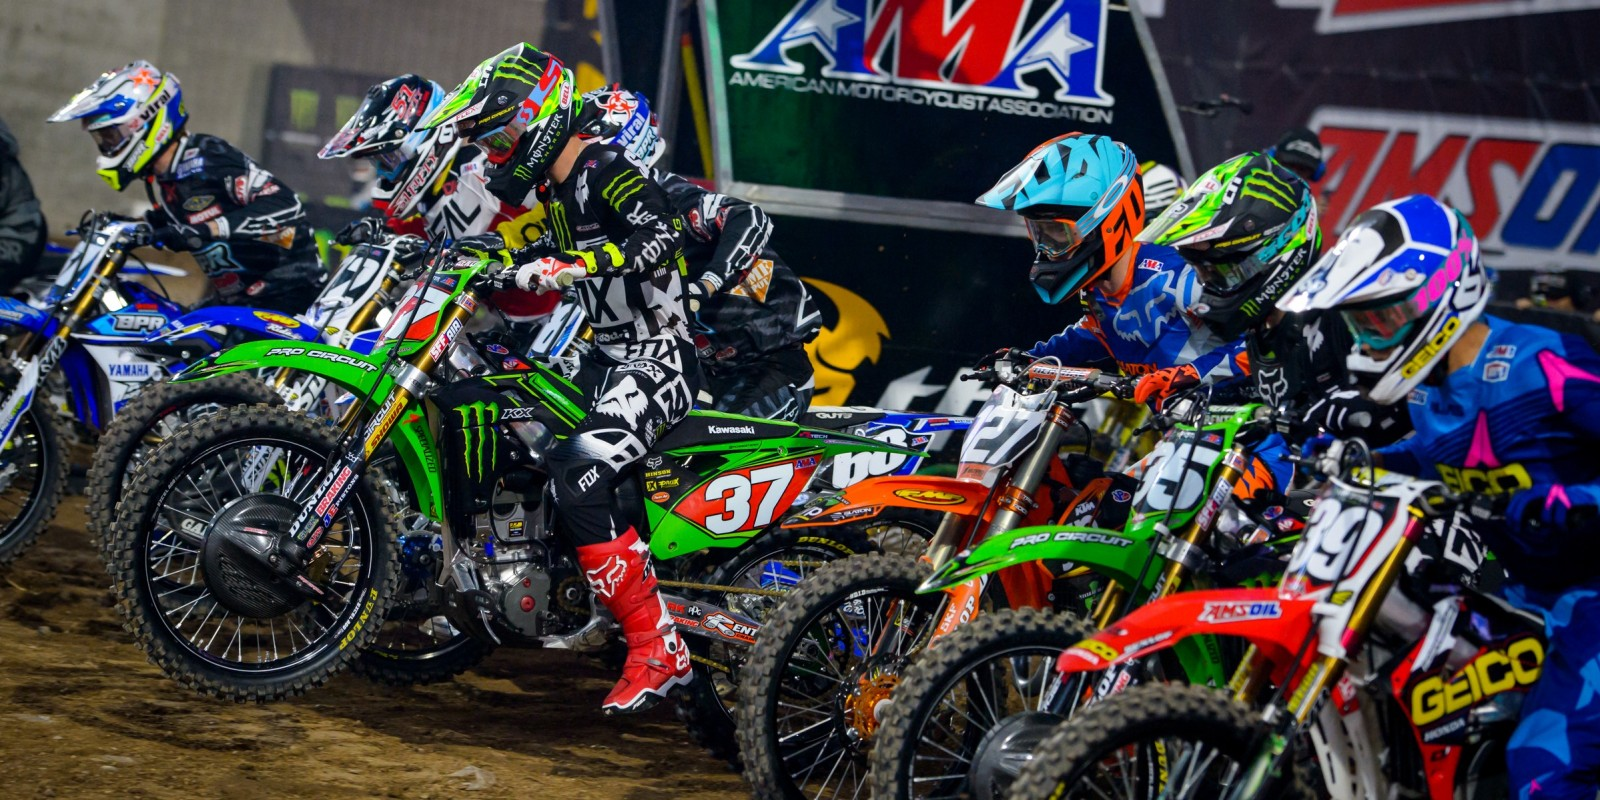 Monster athletes compete during the 2016 Supercross season in Glendale, AZ